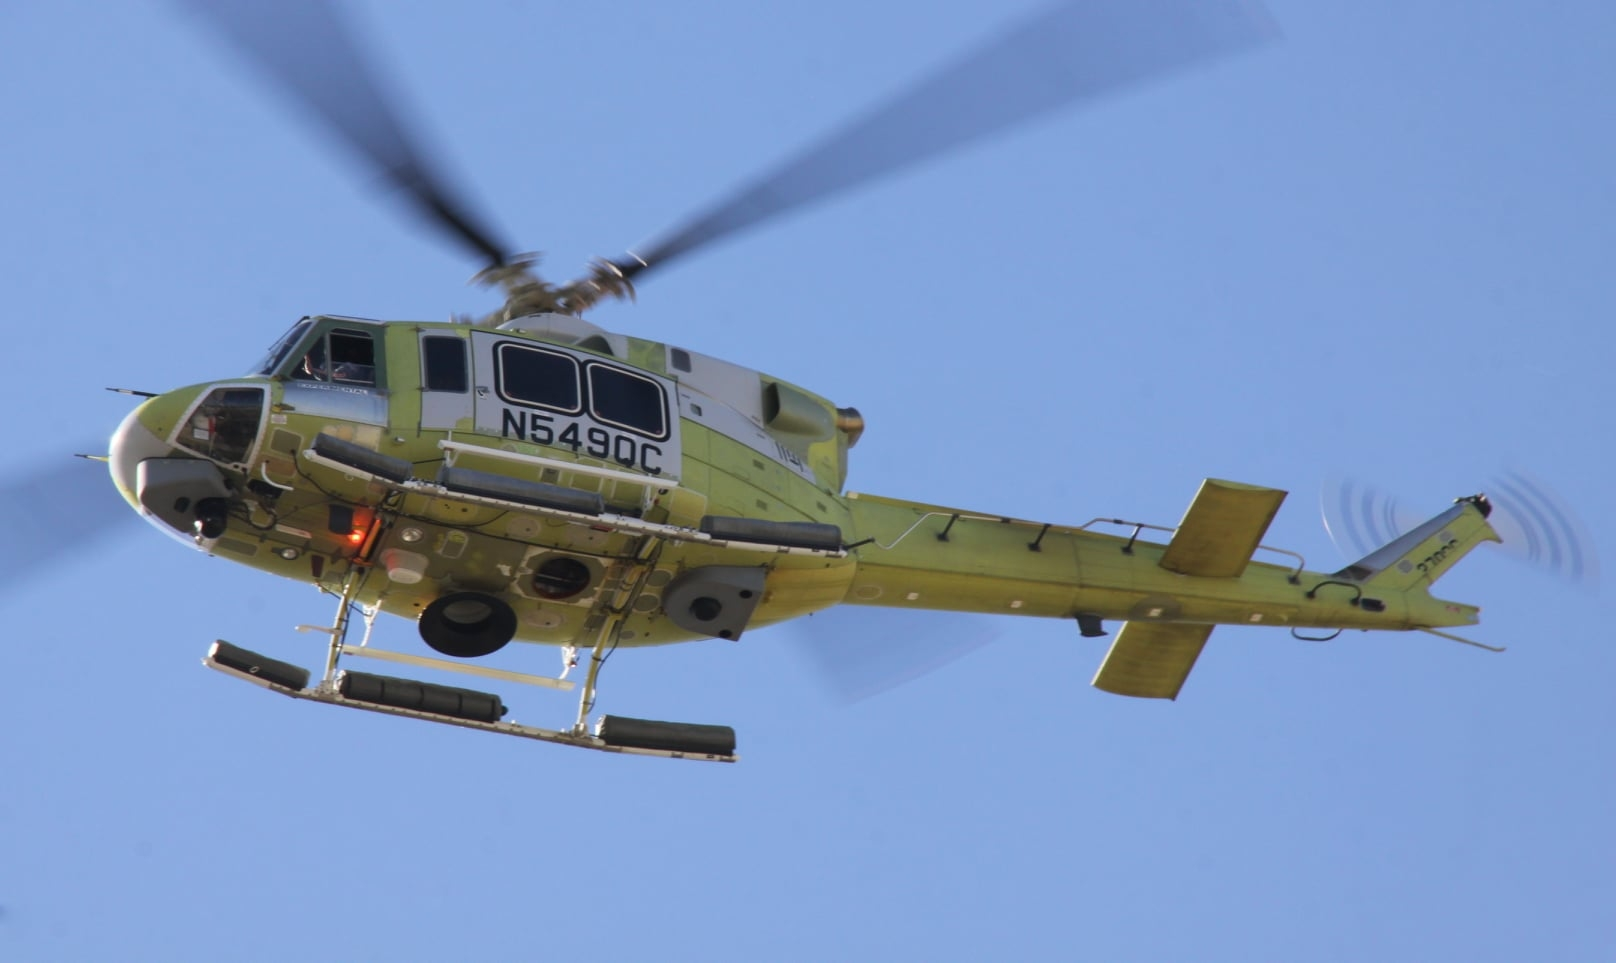 Bell 412 EPI ASW - Page 2 49212038382_31f11b735f_o_d